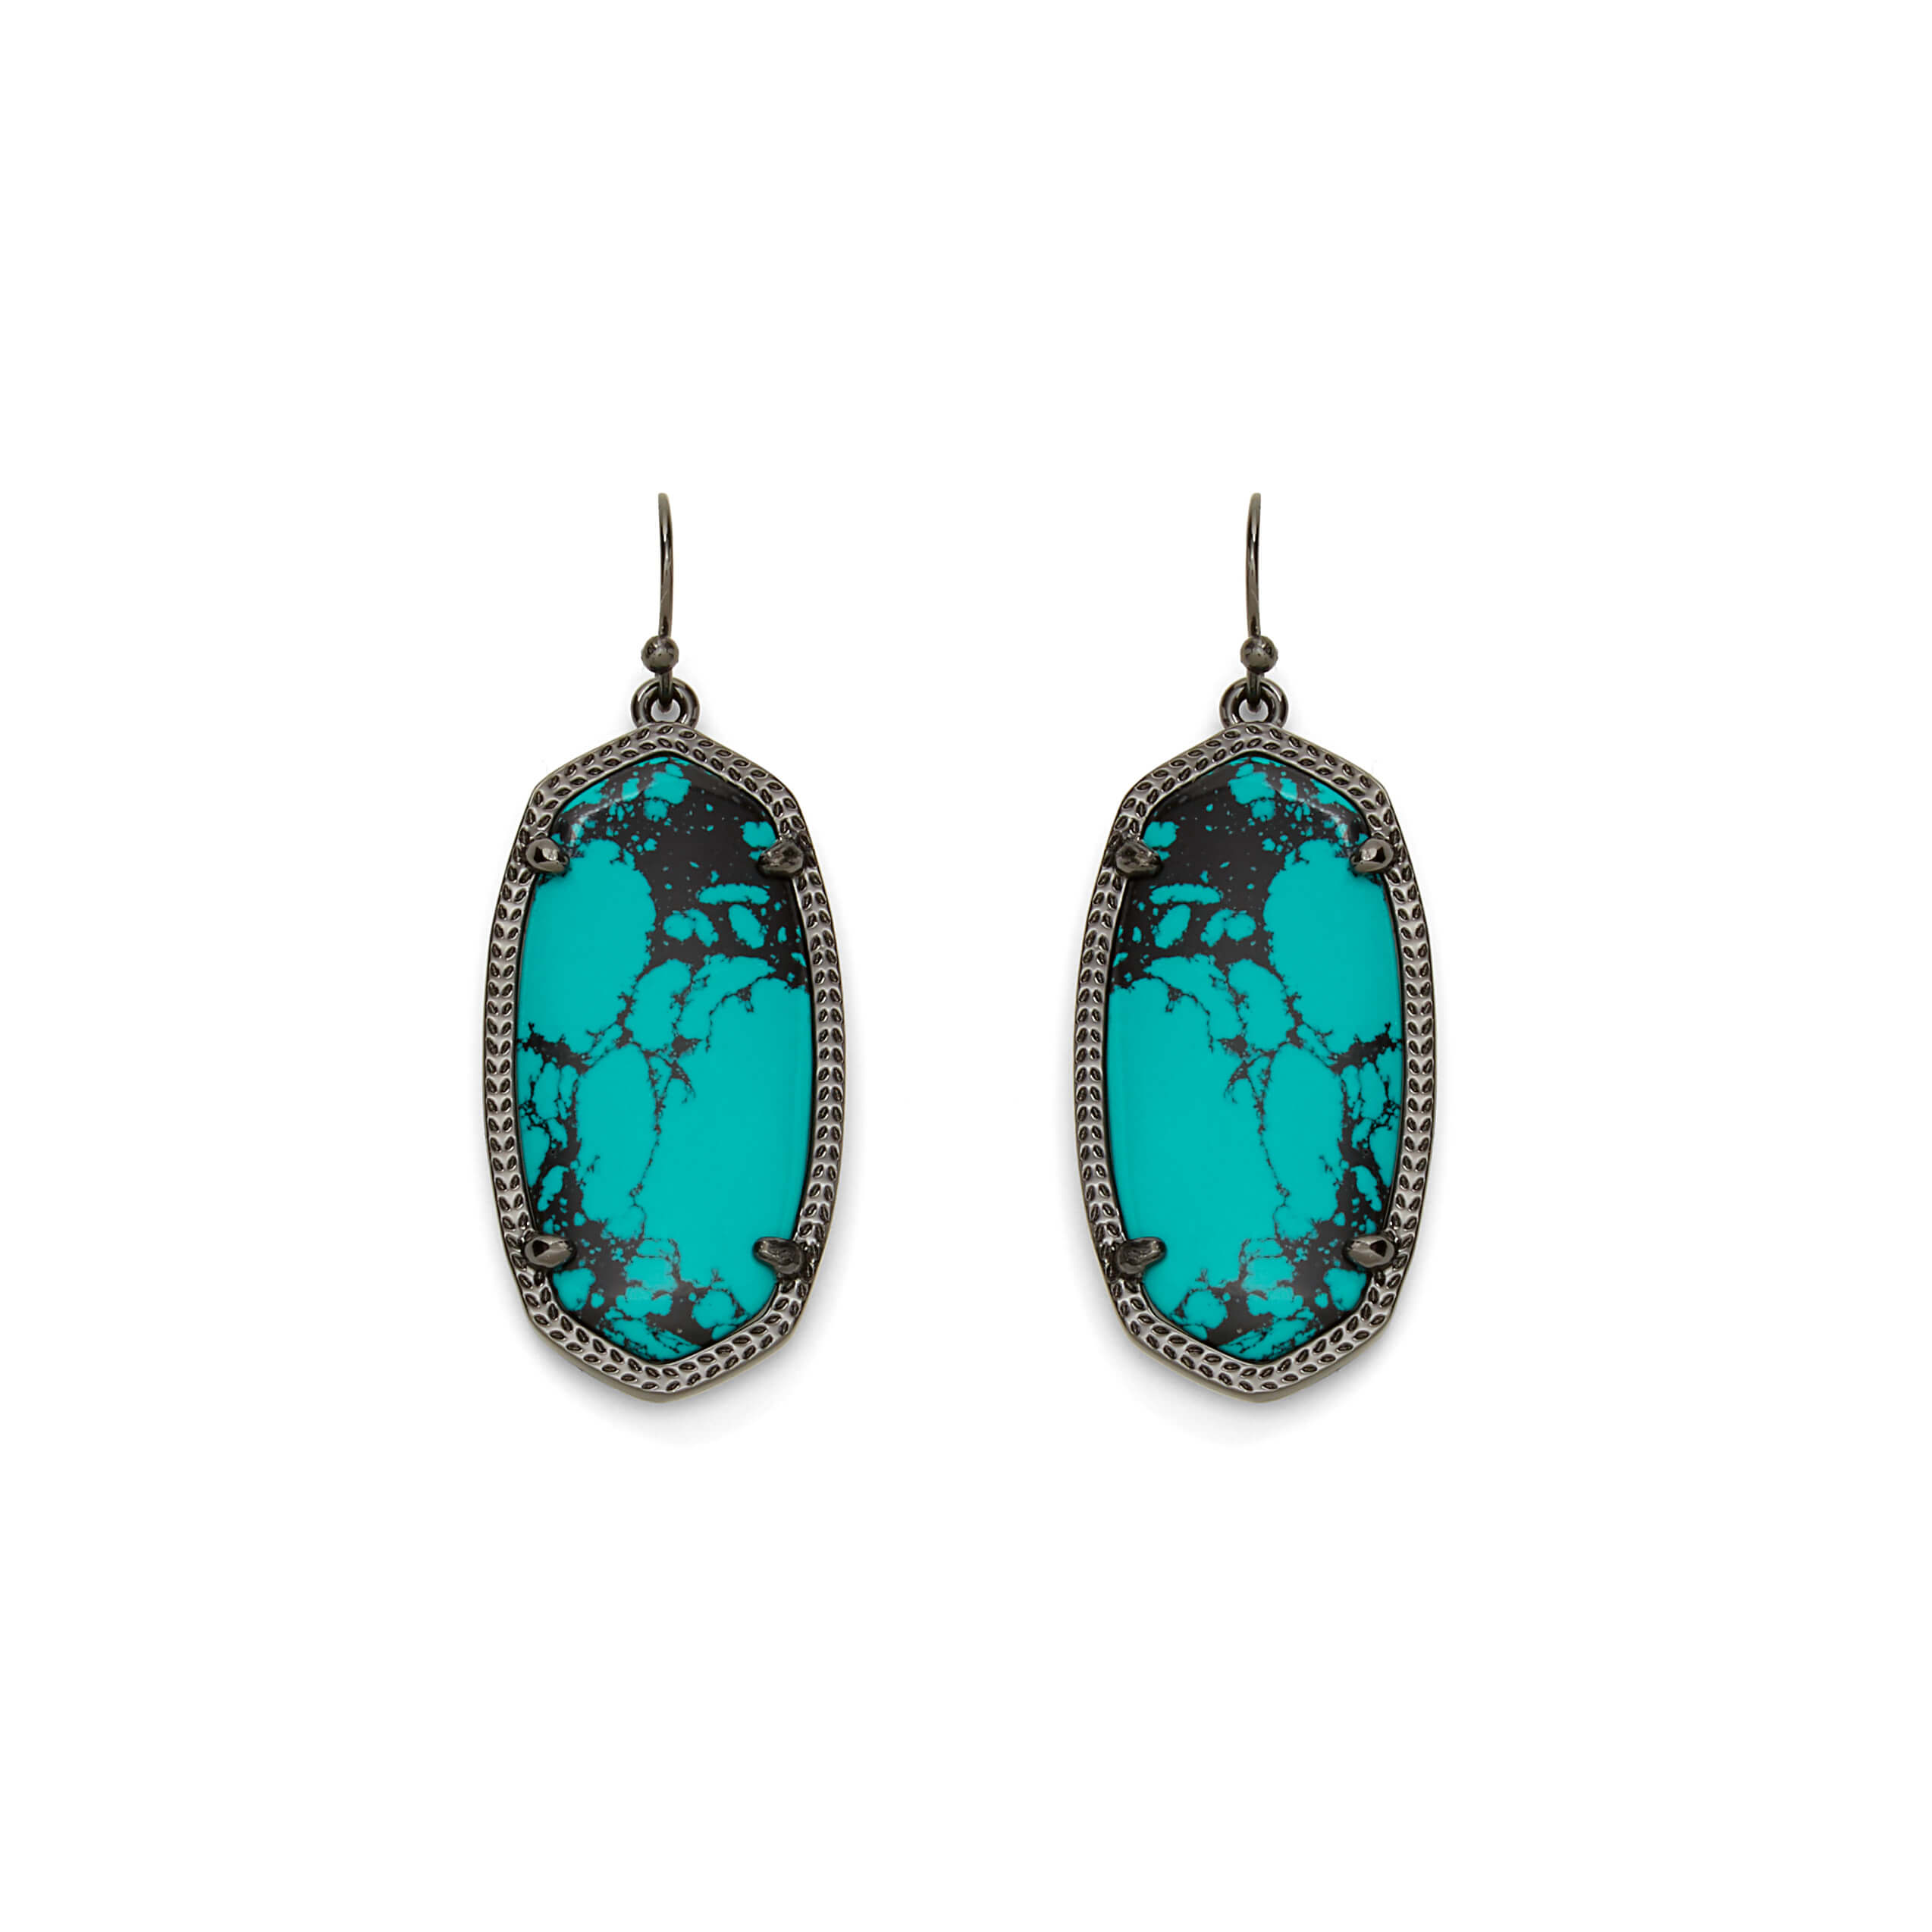 Elle Earrings in Teal Magnesite